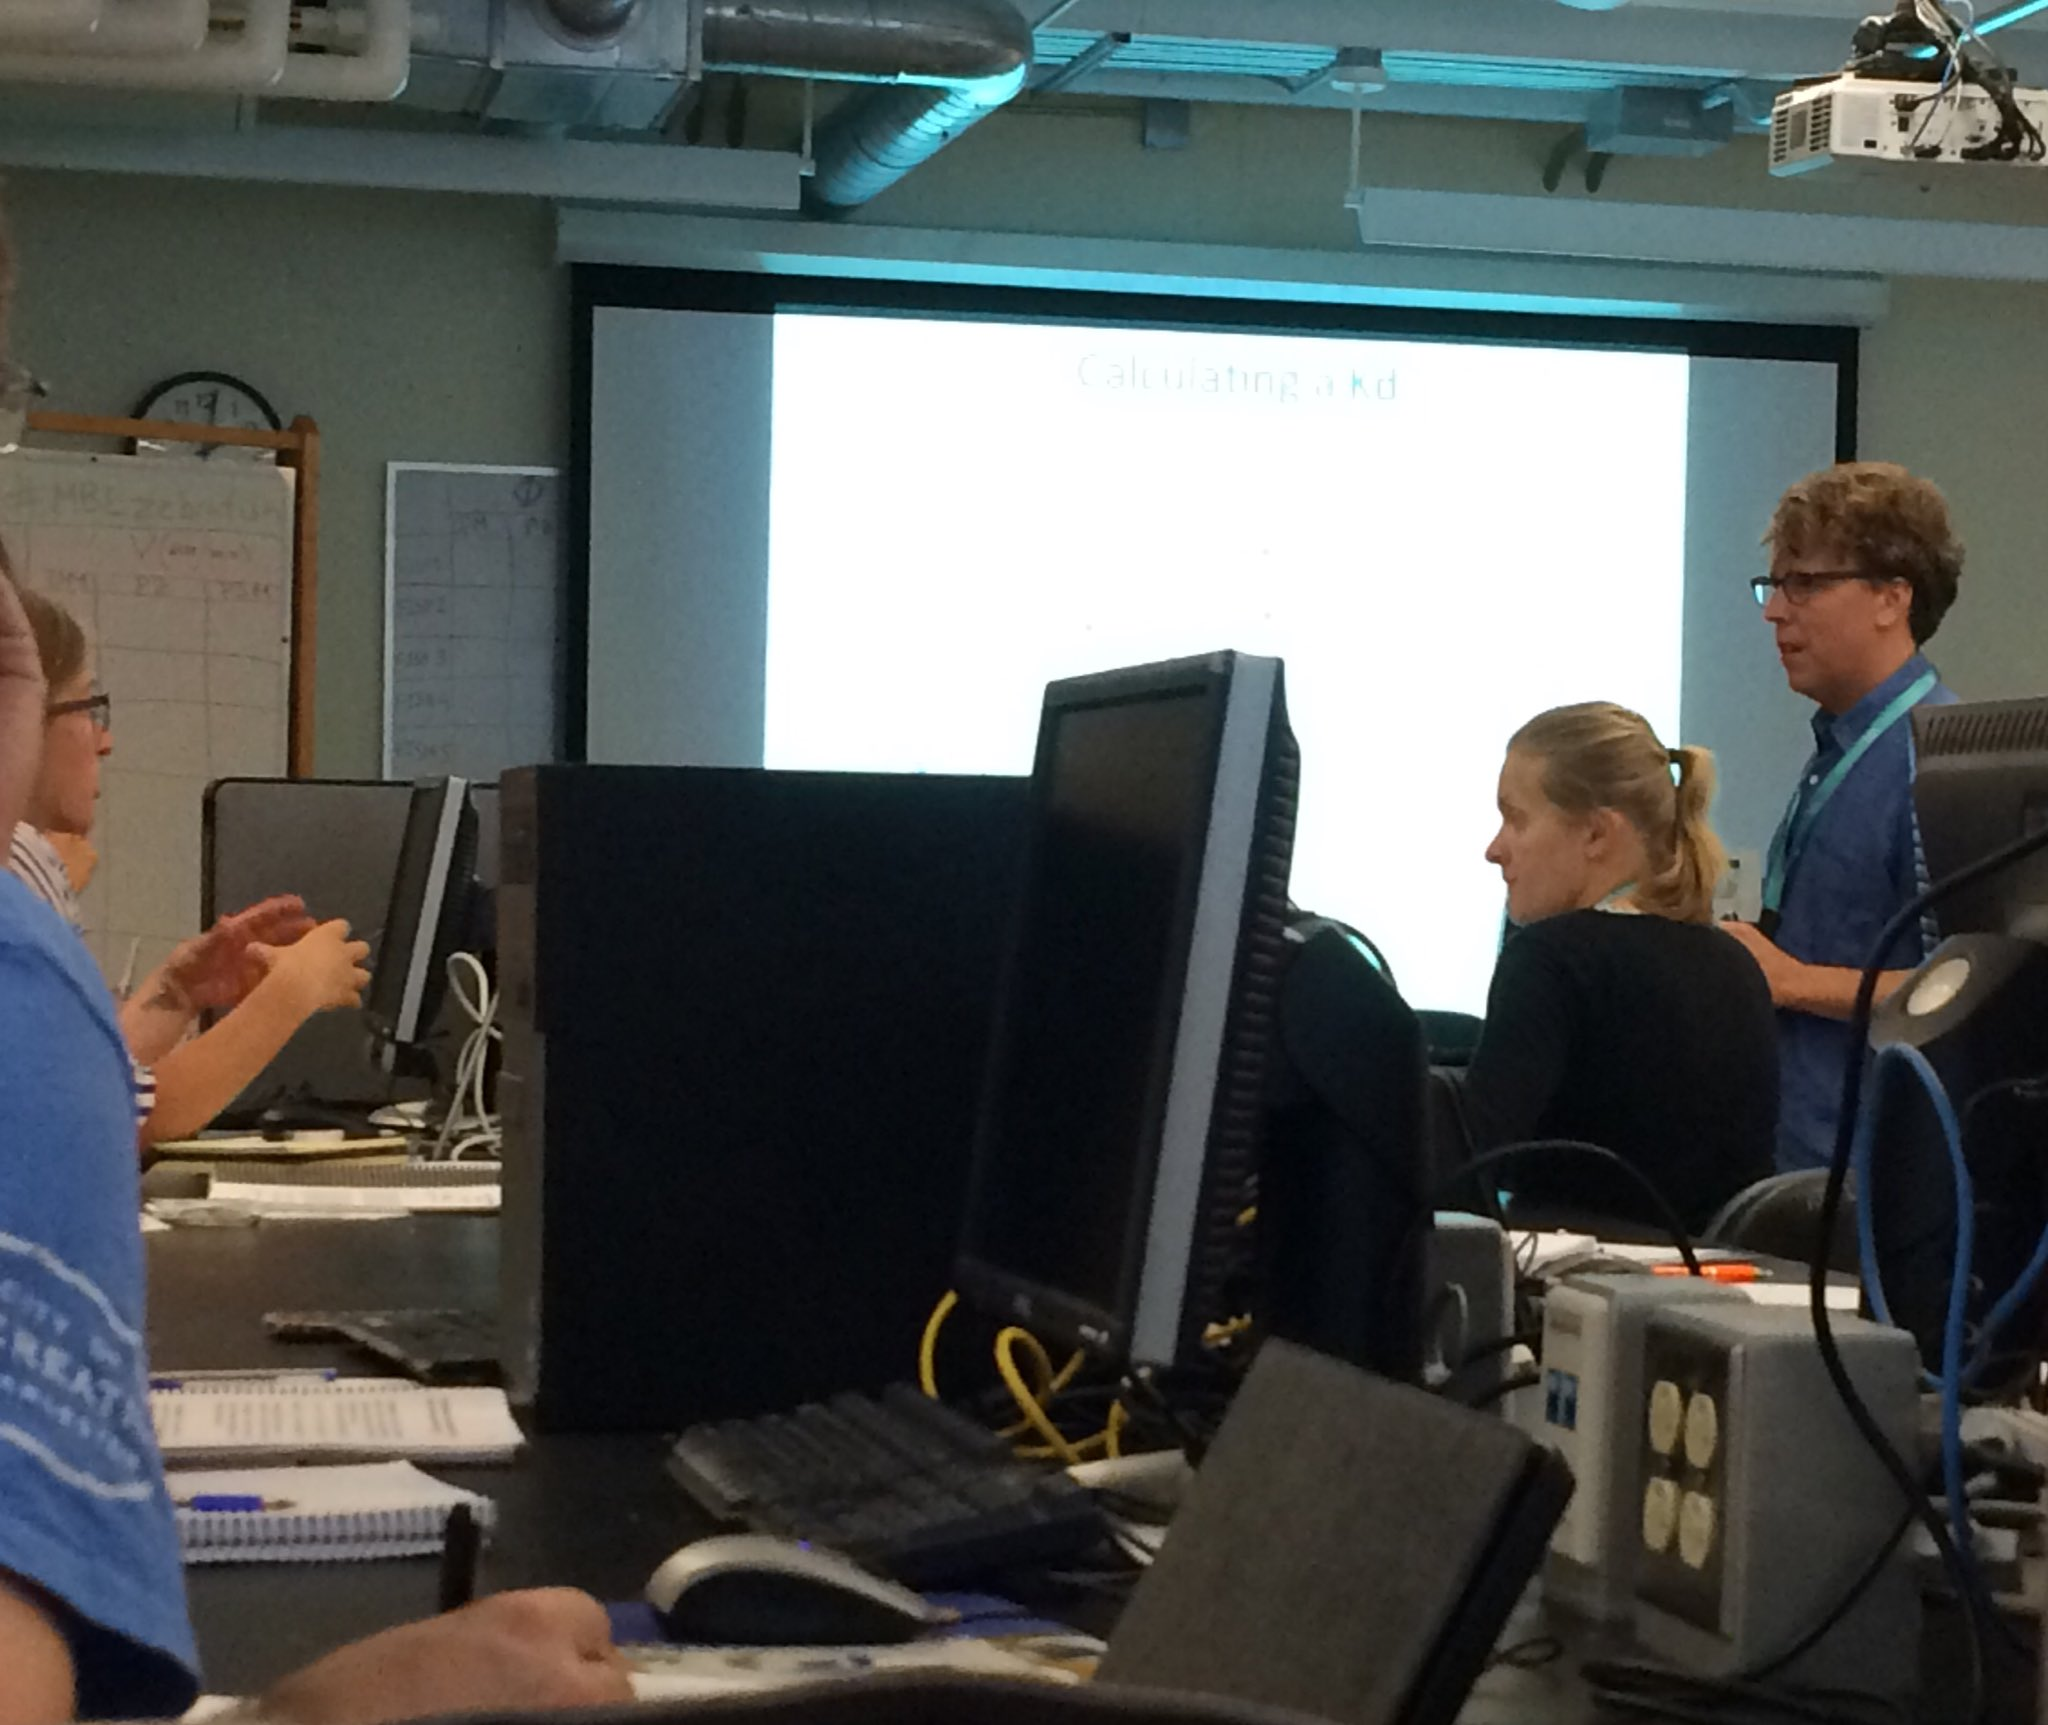 corinne houart on new exciting addition to our course corinne houart on new exciting addition to our course this year mblzebrafish quantitative biology scott holley t co qsdix2bdgb